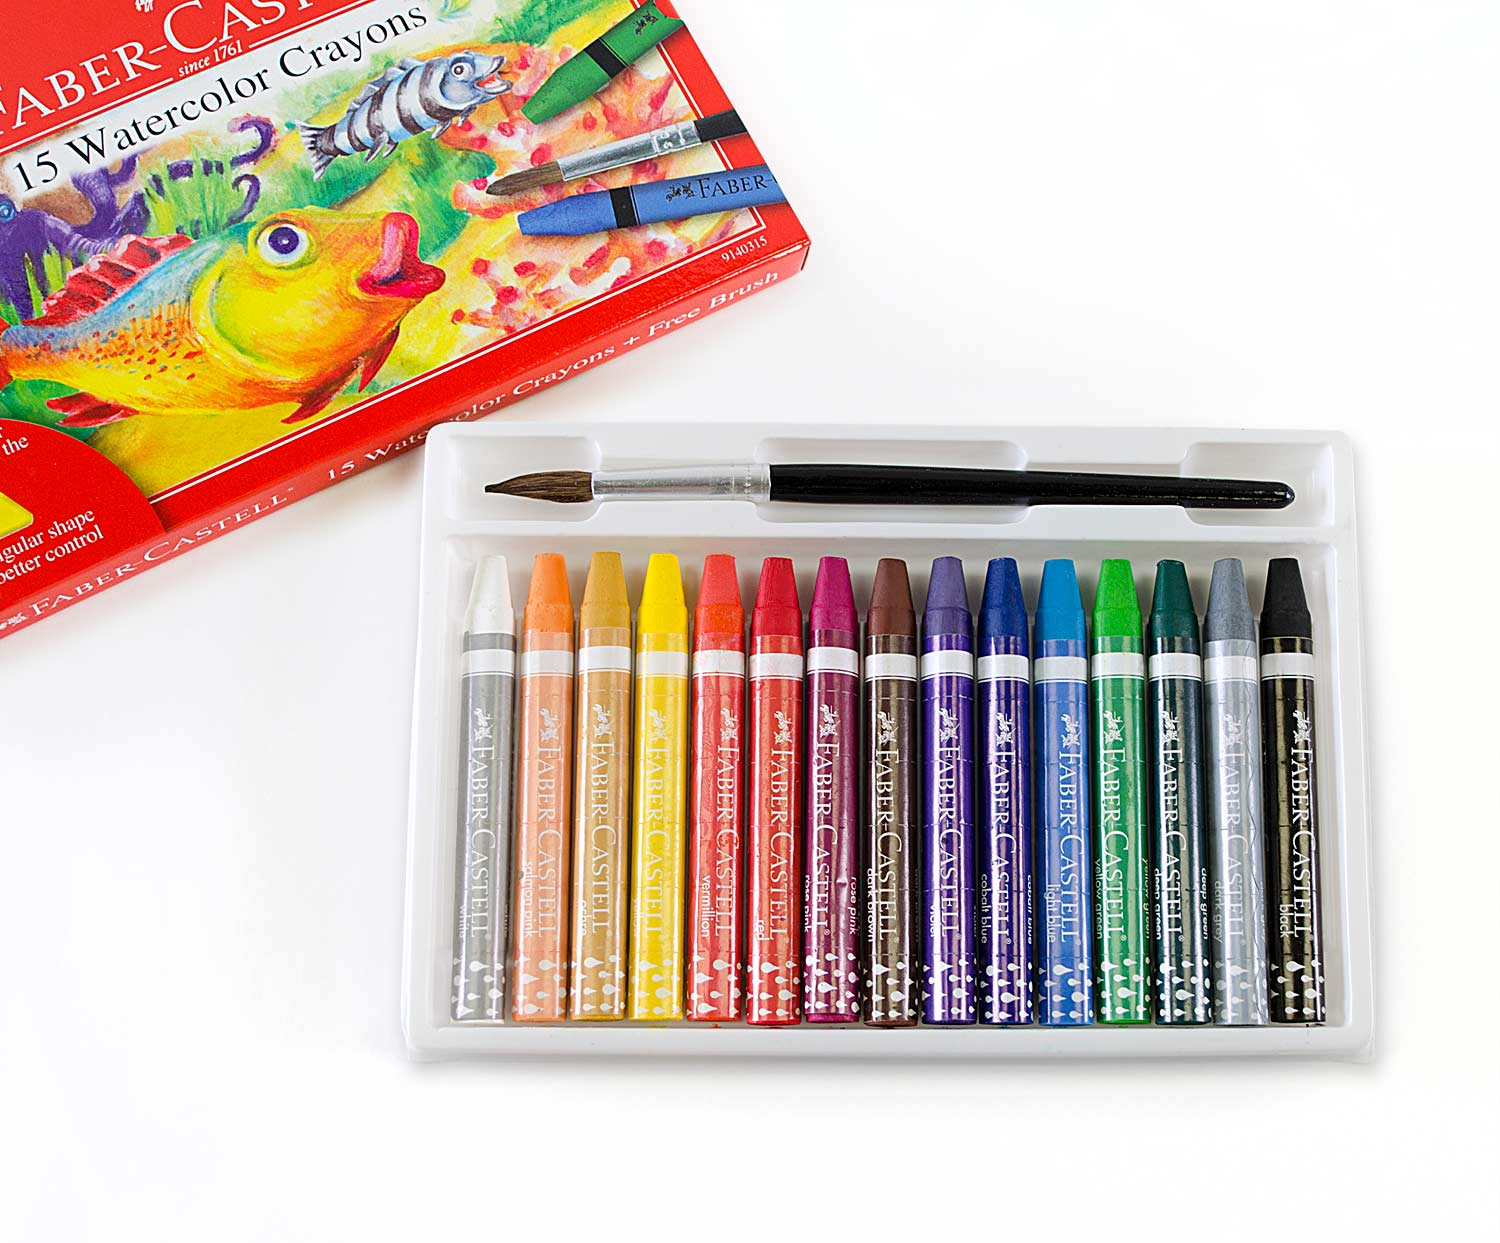 15 ct Watercolor Crayons with free brush - A Child's Delight